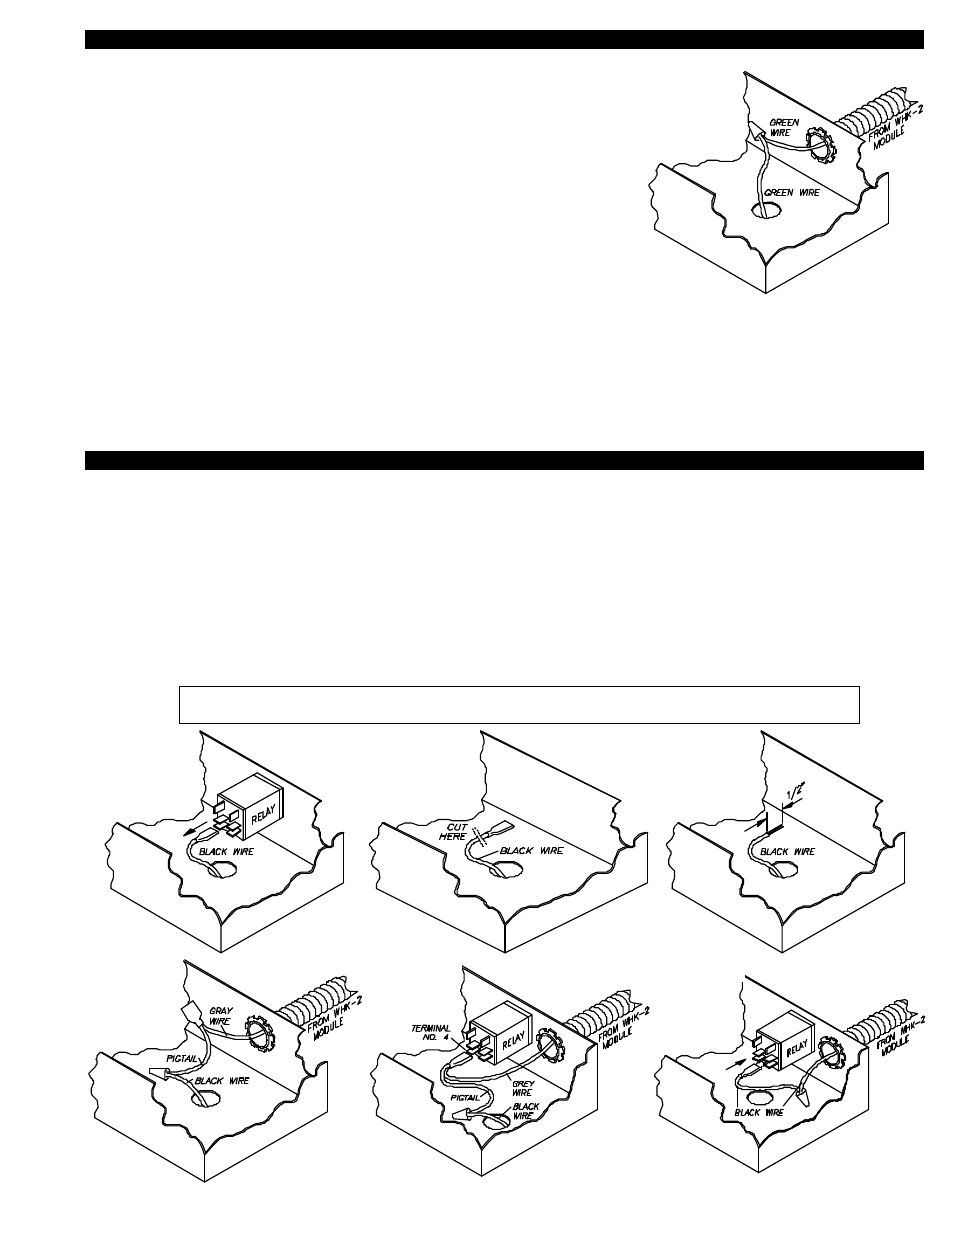 hight resolution of tjernlund whk 2 millivolt interlock kit discontinued not compatible with uc1 8504026 rev 8 09 98 user manual page 6 15